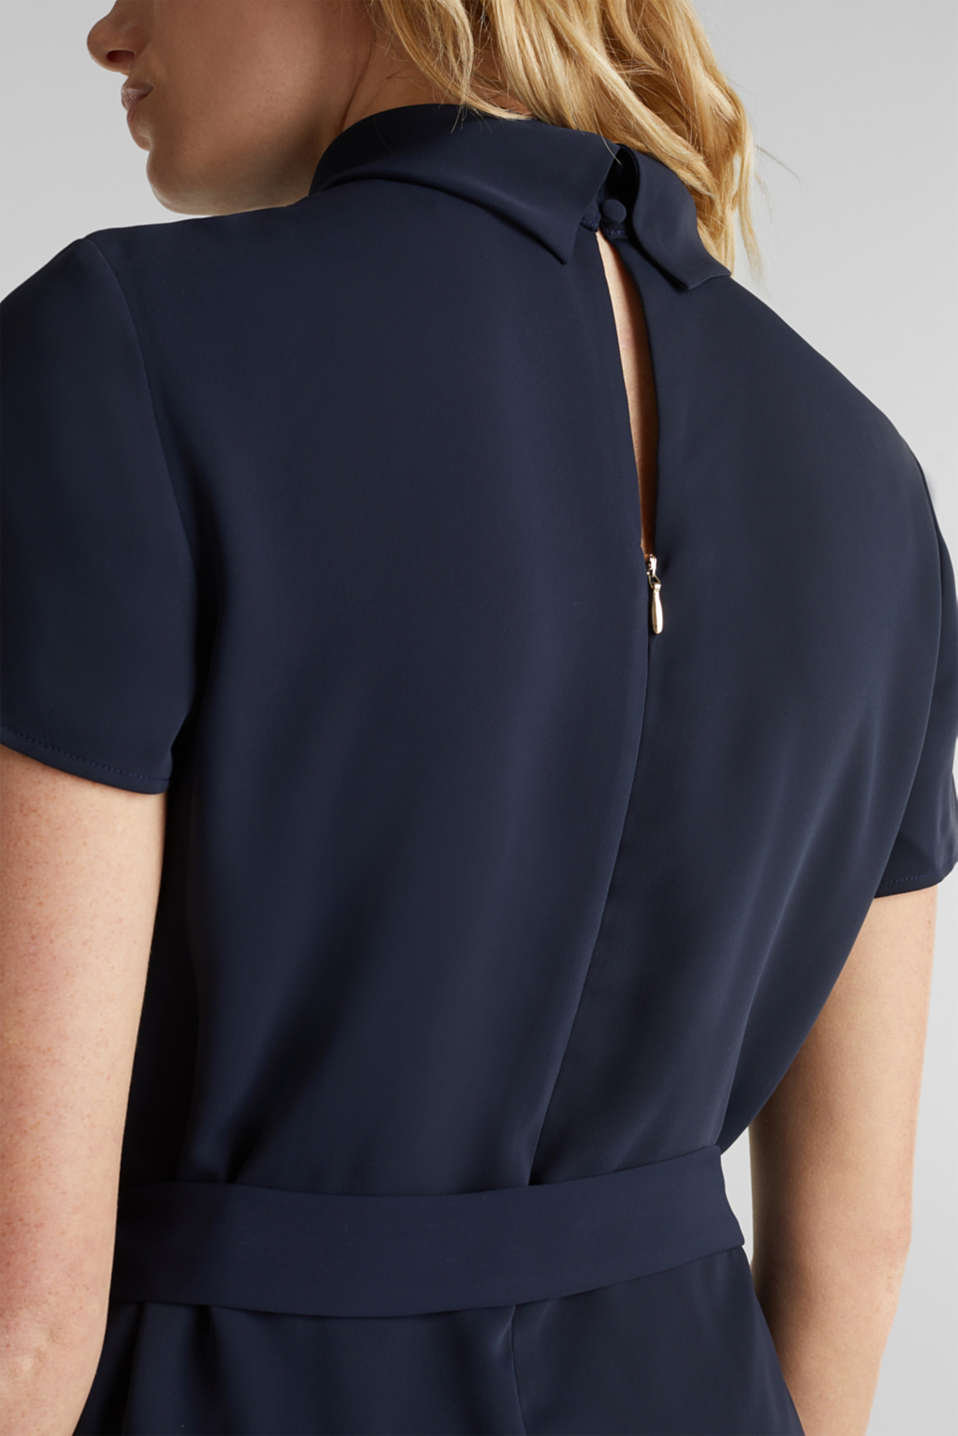 Cloth polo neck dress, NAVY, detail image number 4